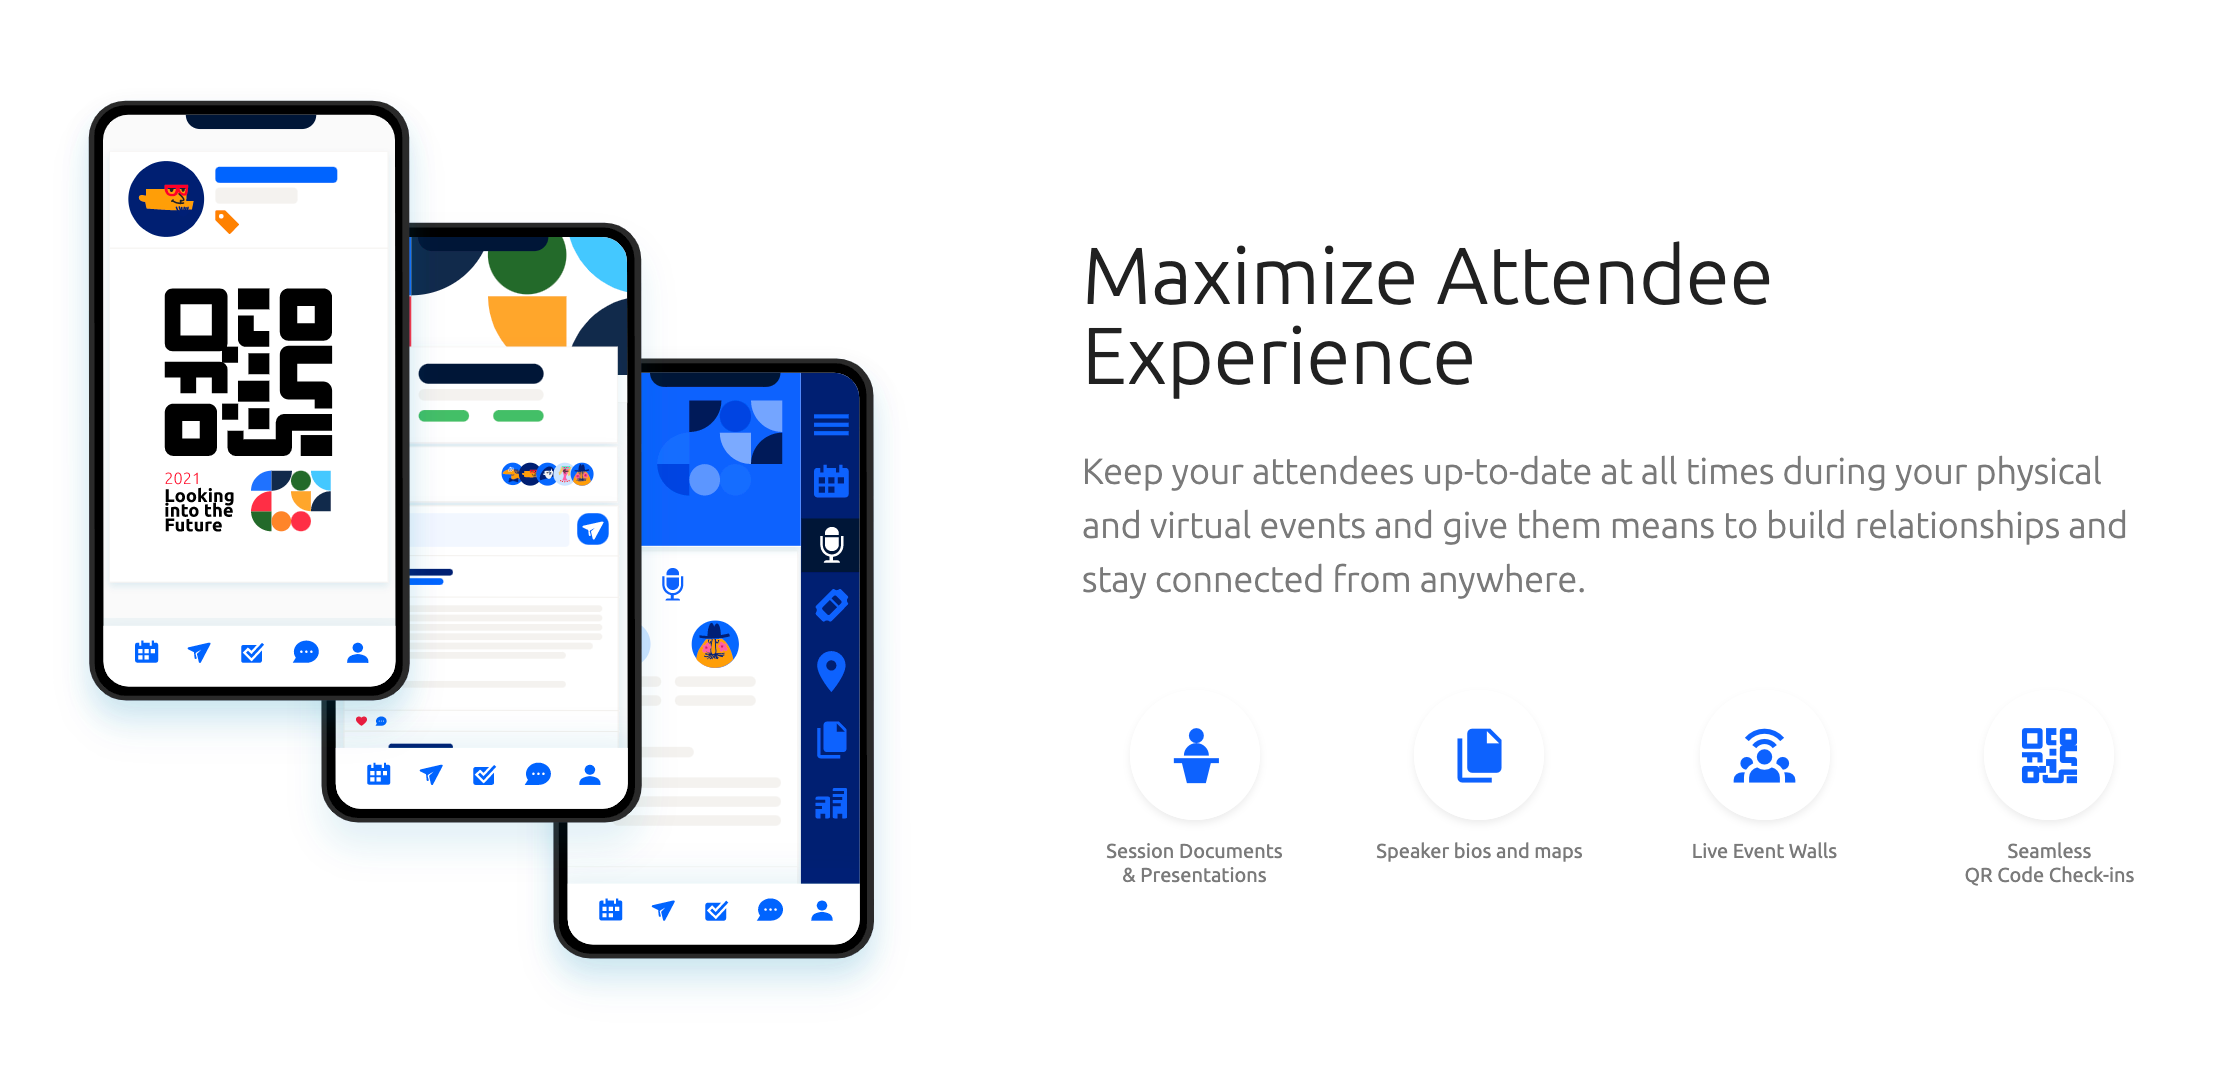 Maximize attendee experience.